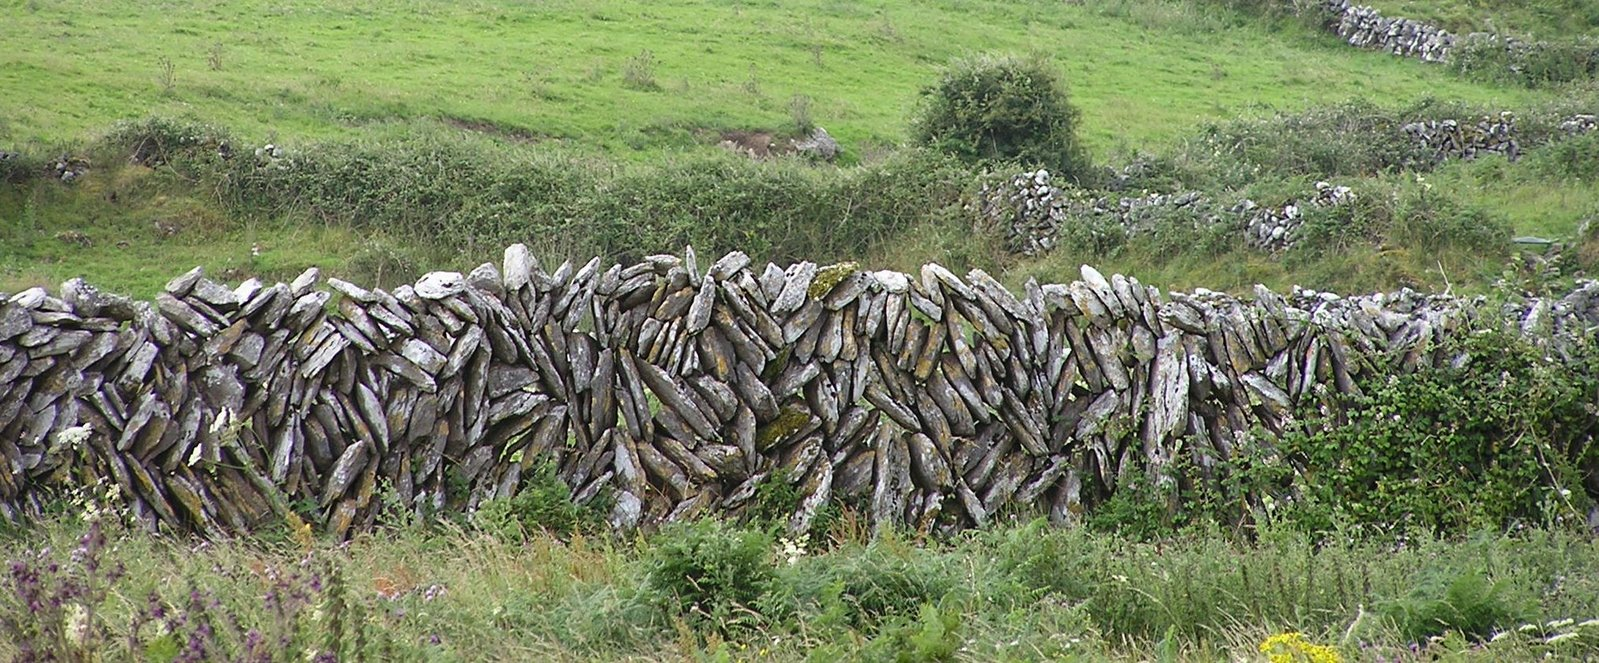 stone wall, county clare, ireland